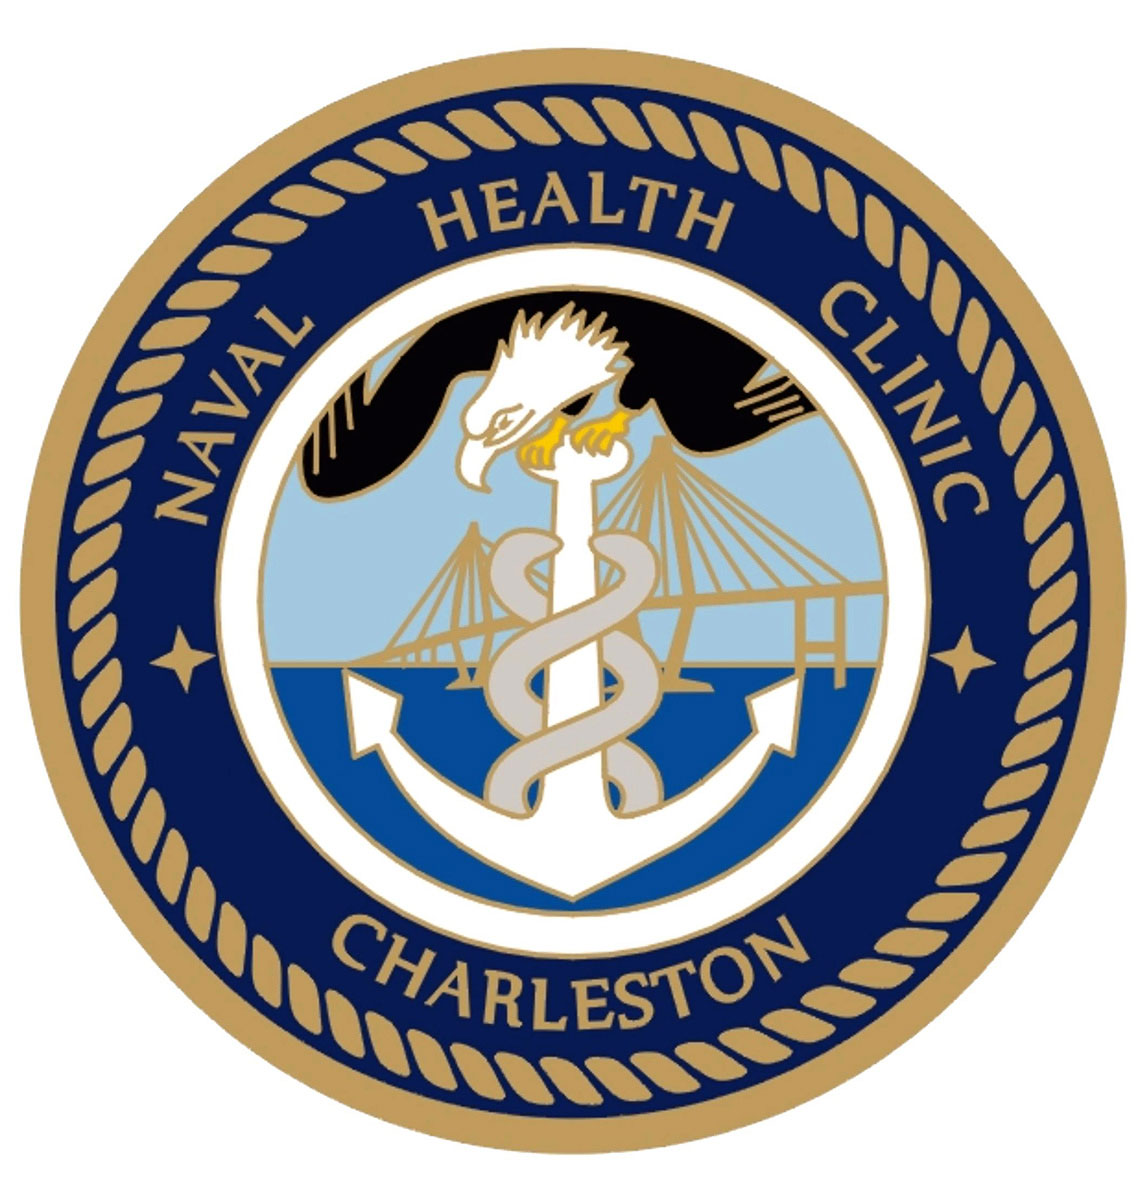 Naval Health Clinic Charleston sign